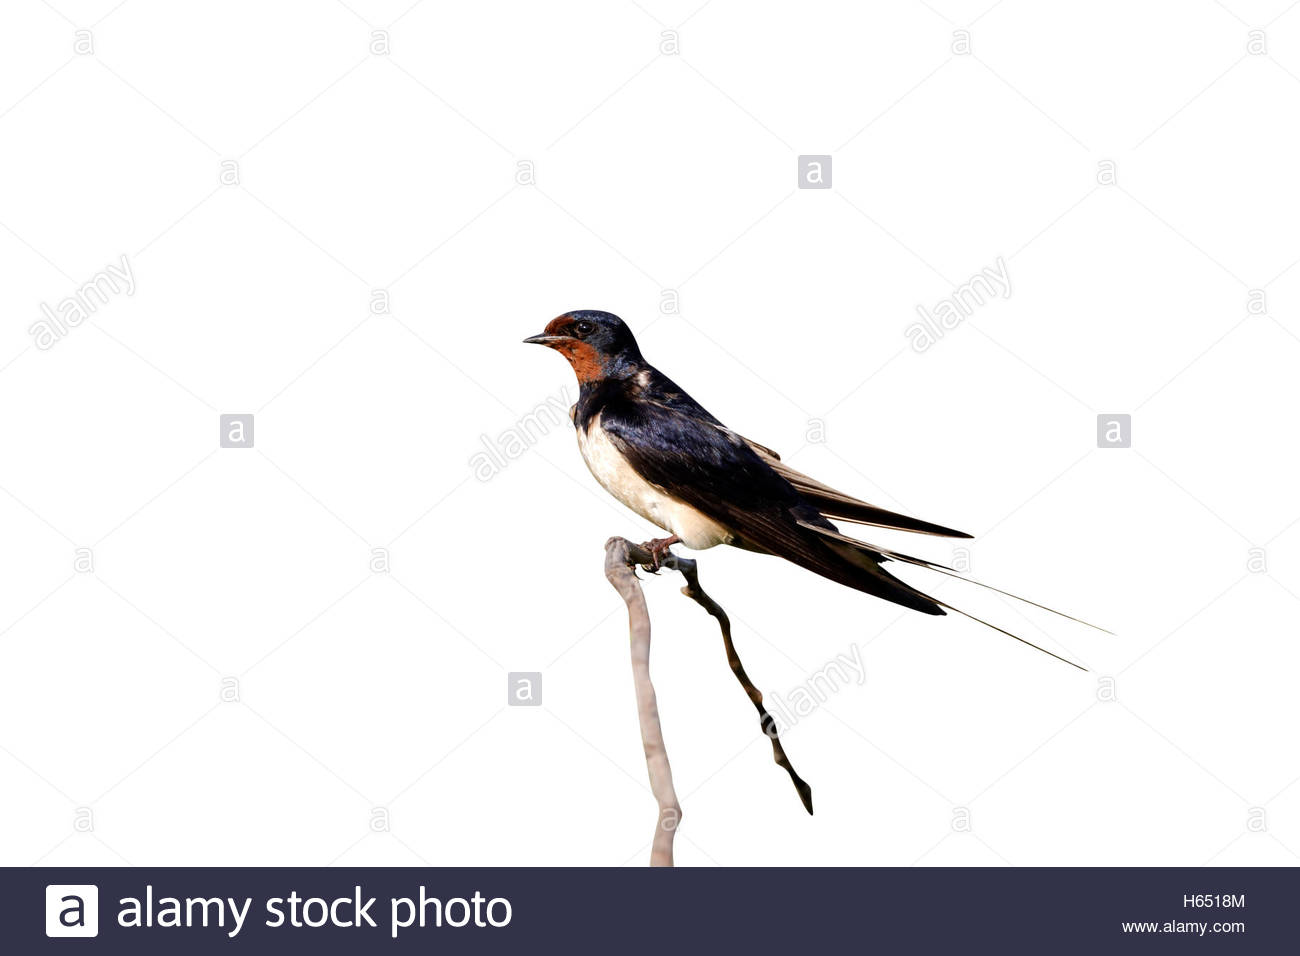 1300x956 European Barn Swallow Stock Photos Amp